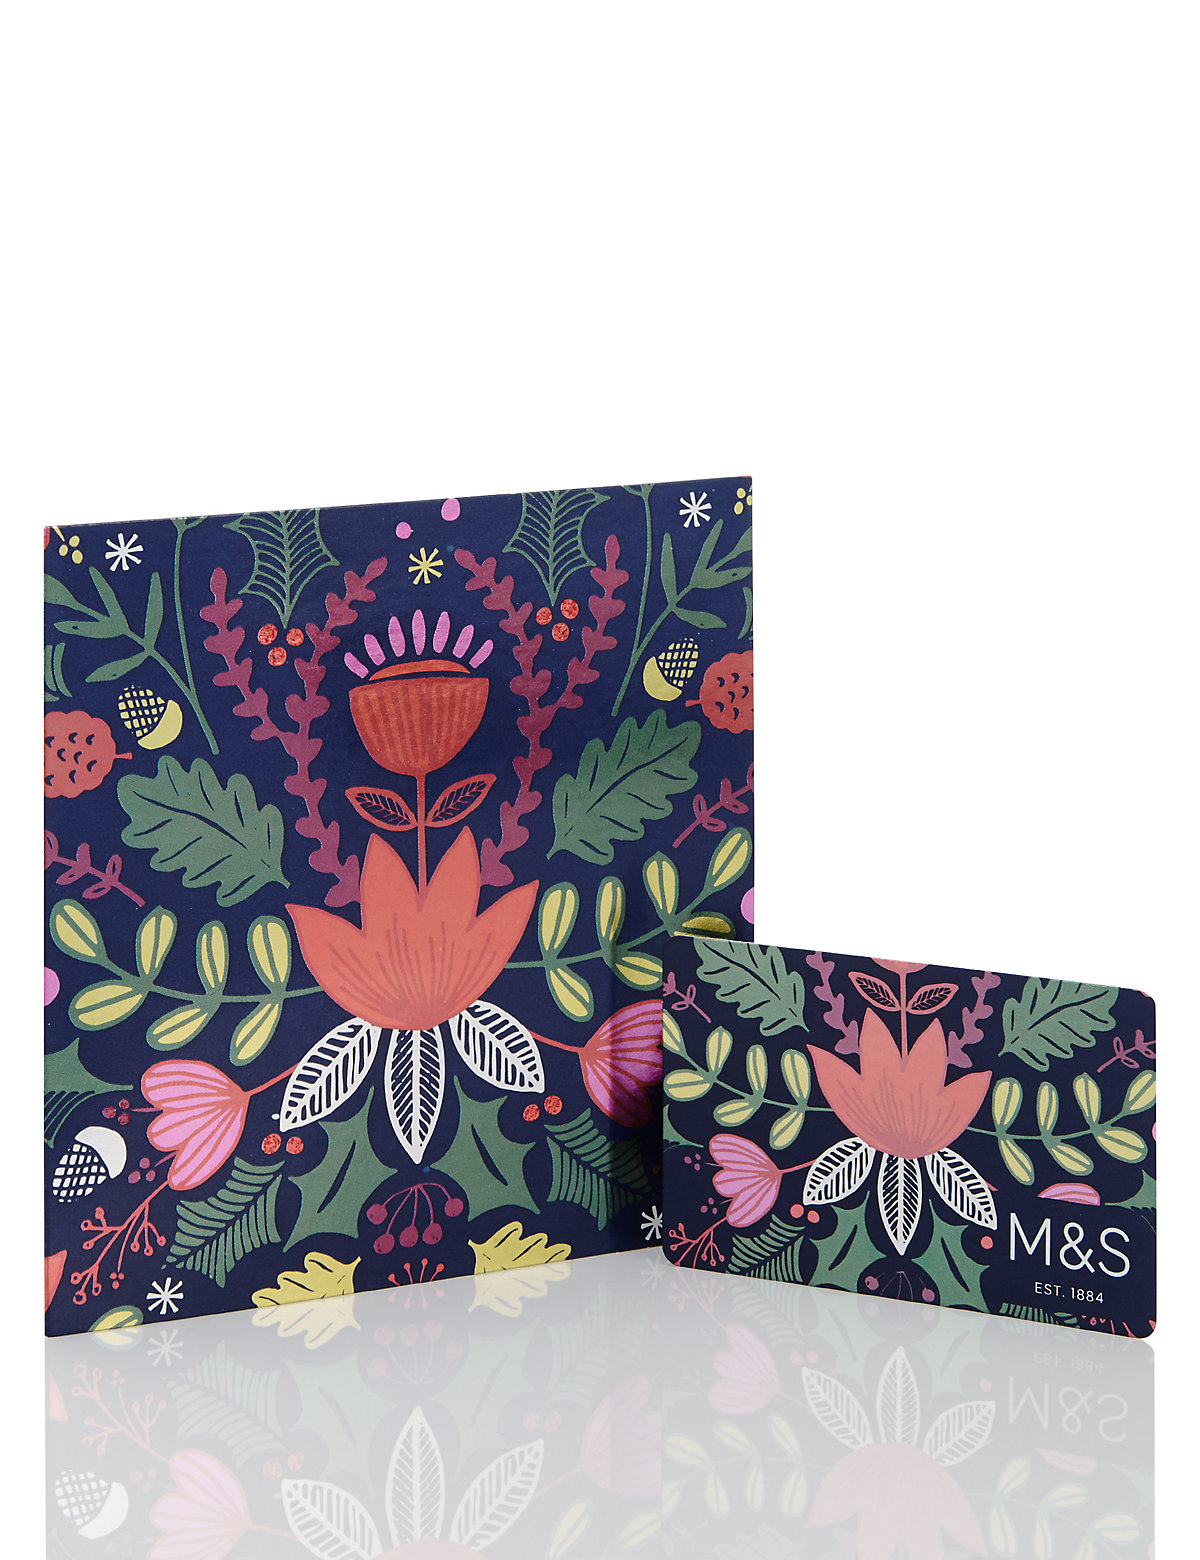 Foiled Floral Gift Card £1500